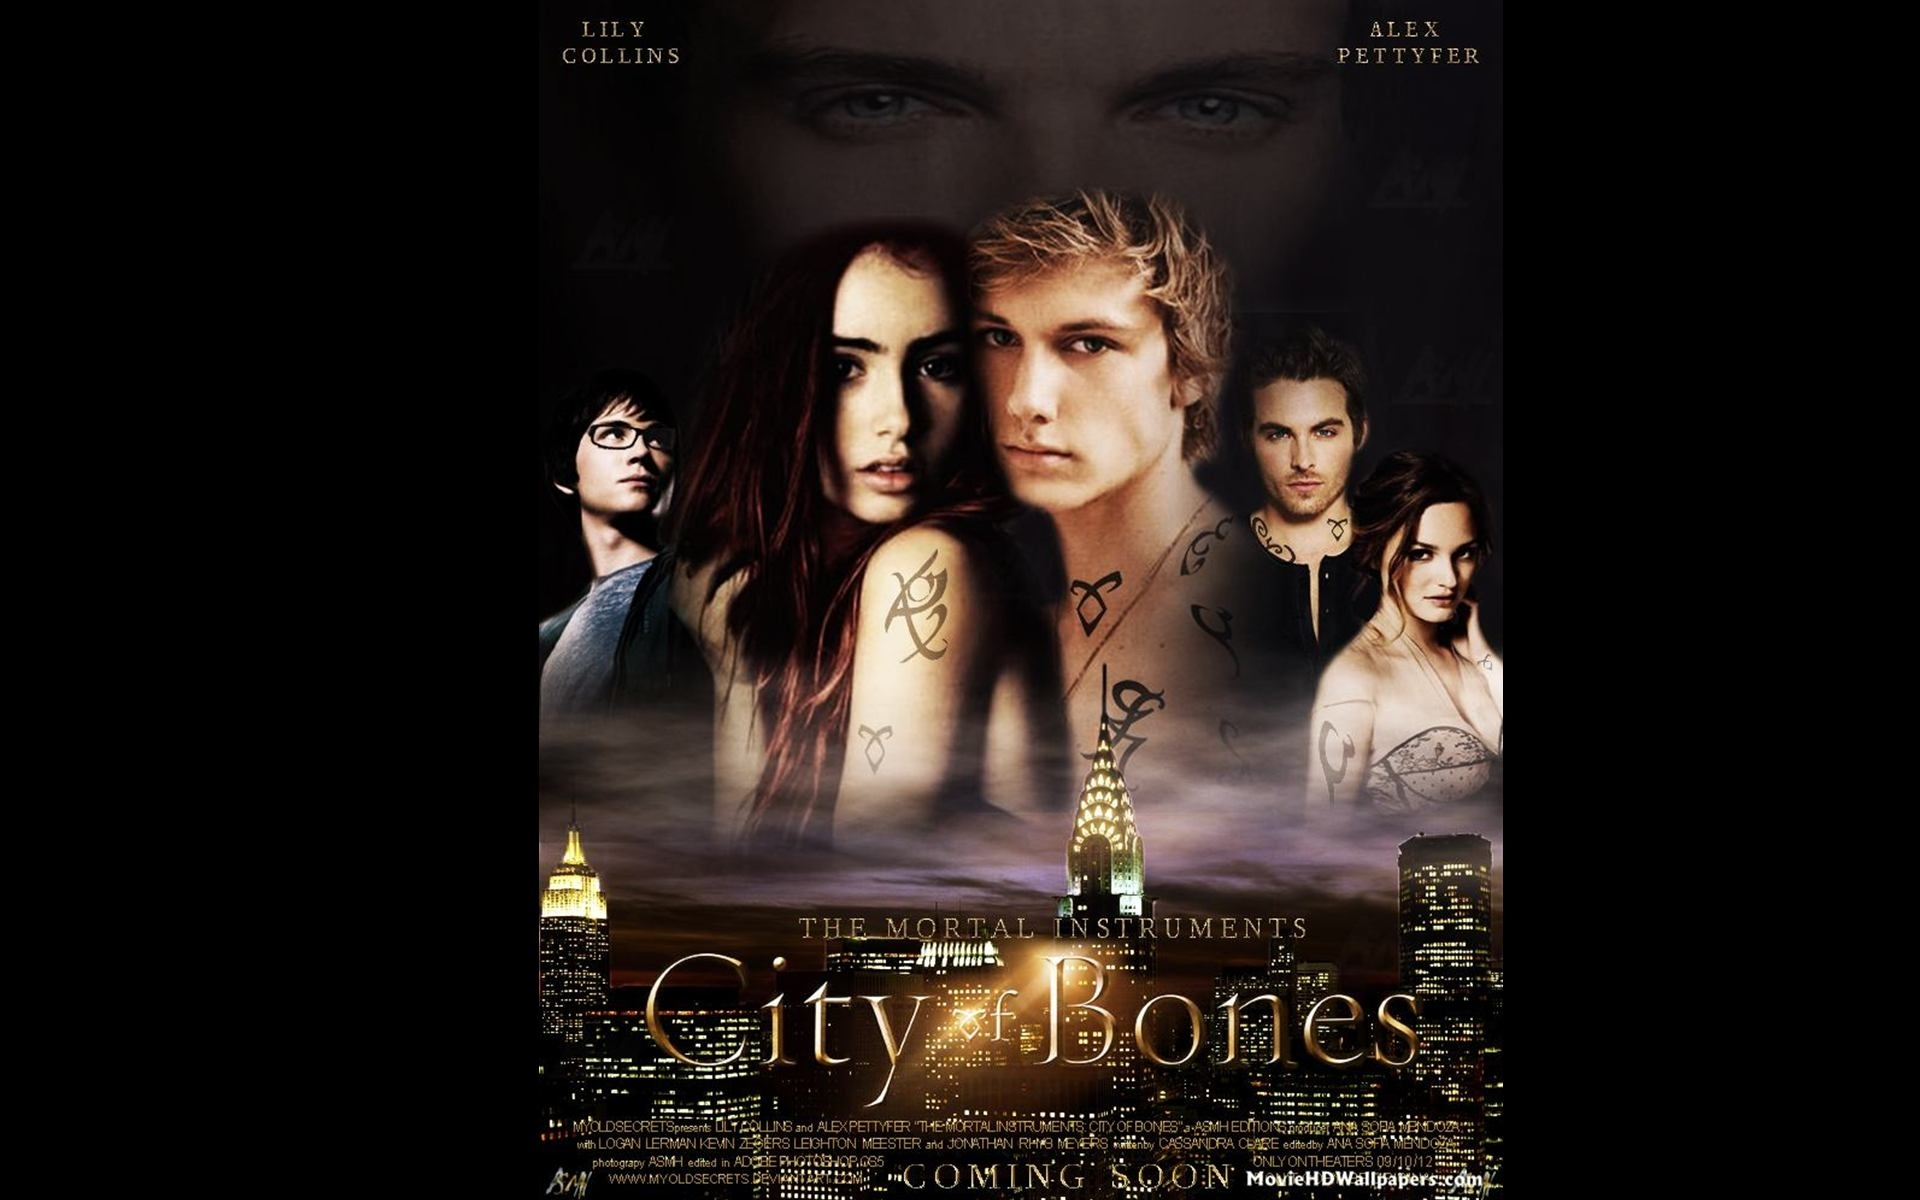 the mortal instruments city of bones (2013) - movie hd wallpapers